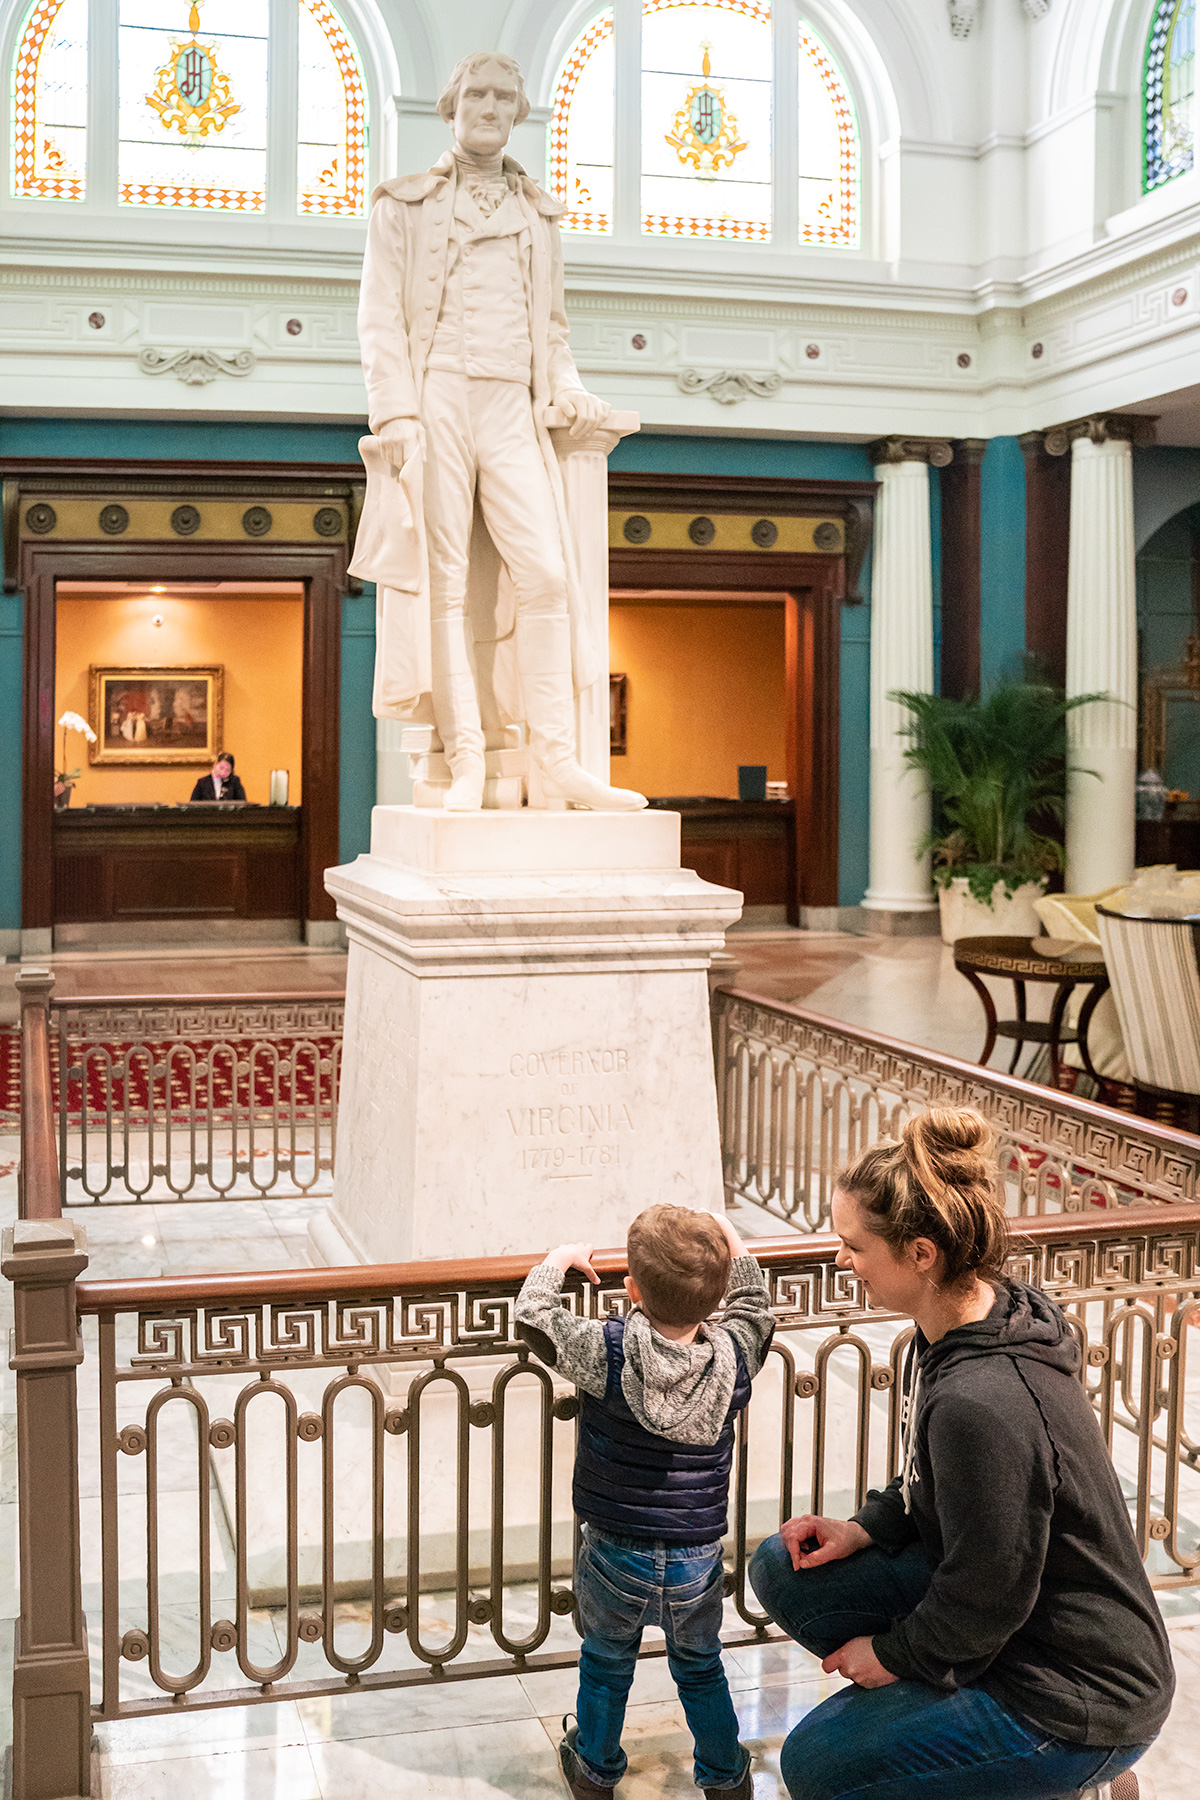 Checking-Out-Jefferson-Statue-The-Jefferson-Hotel-Richmond